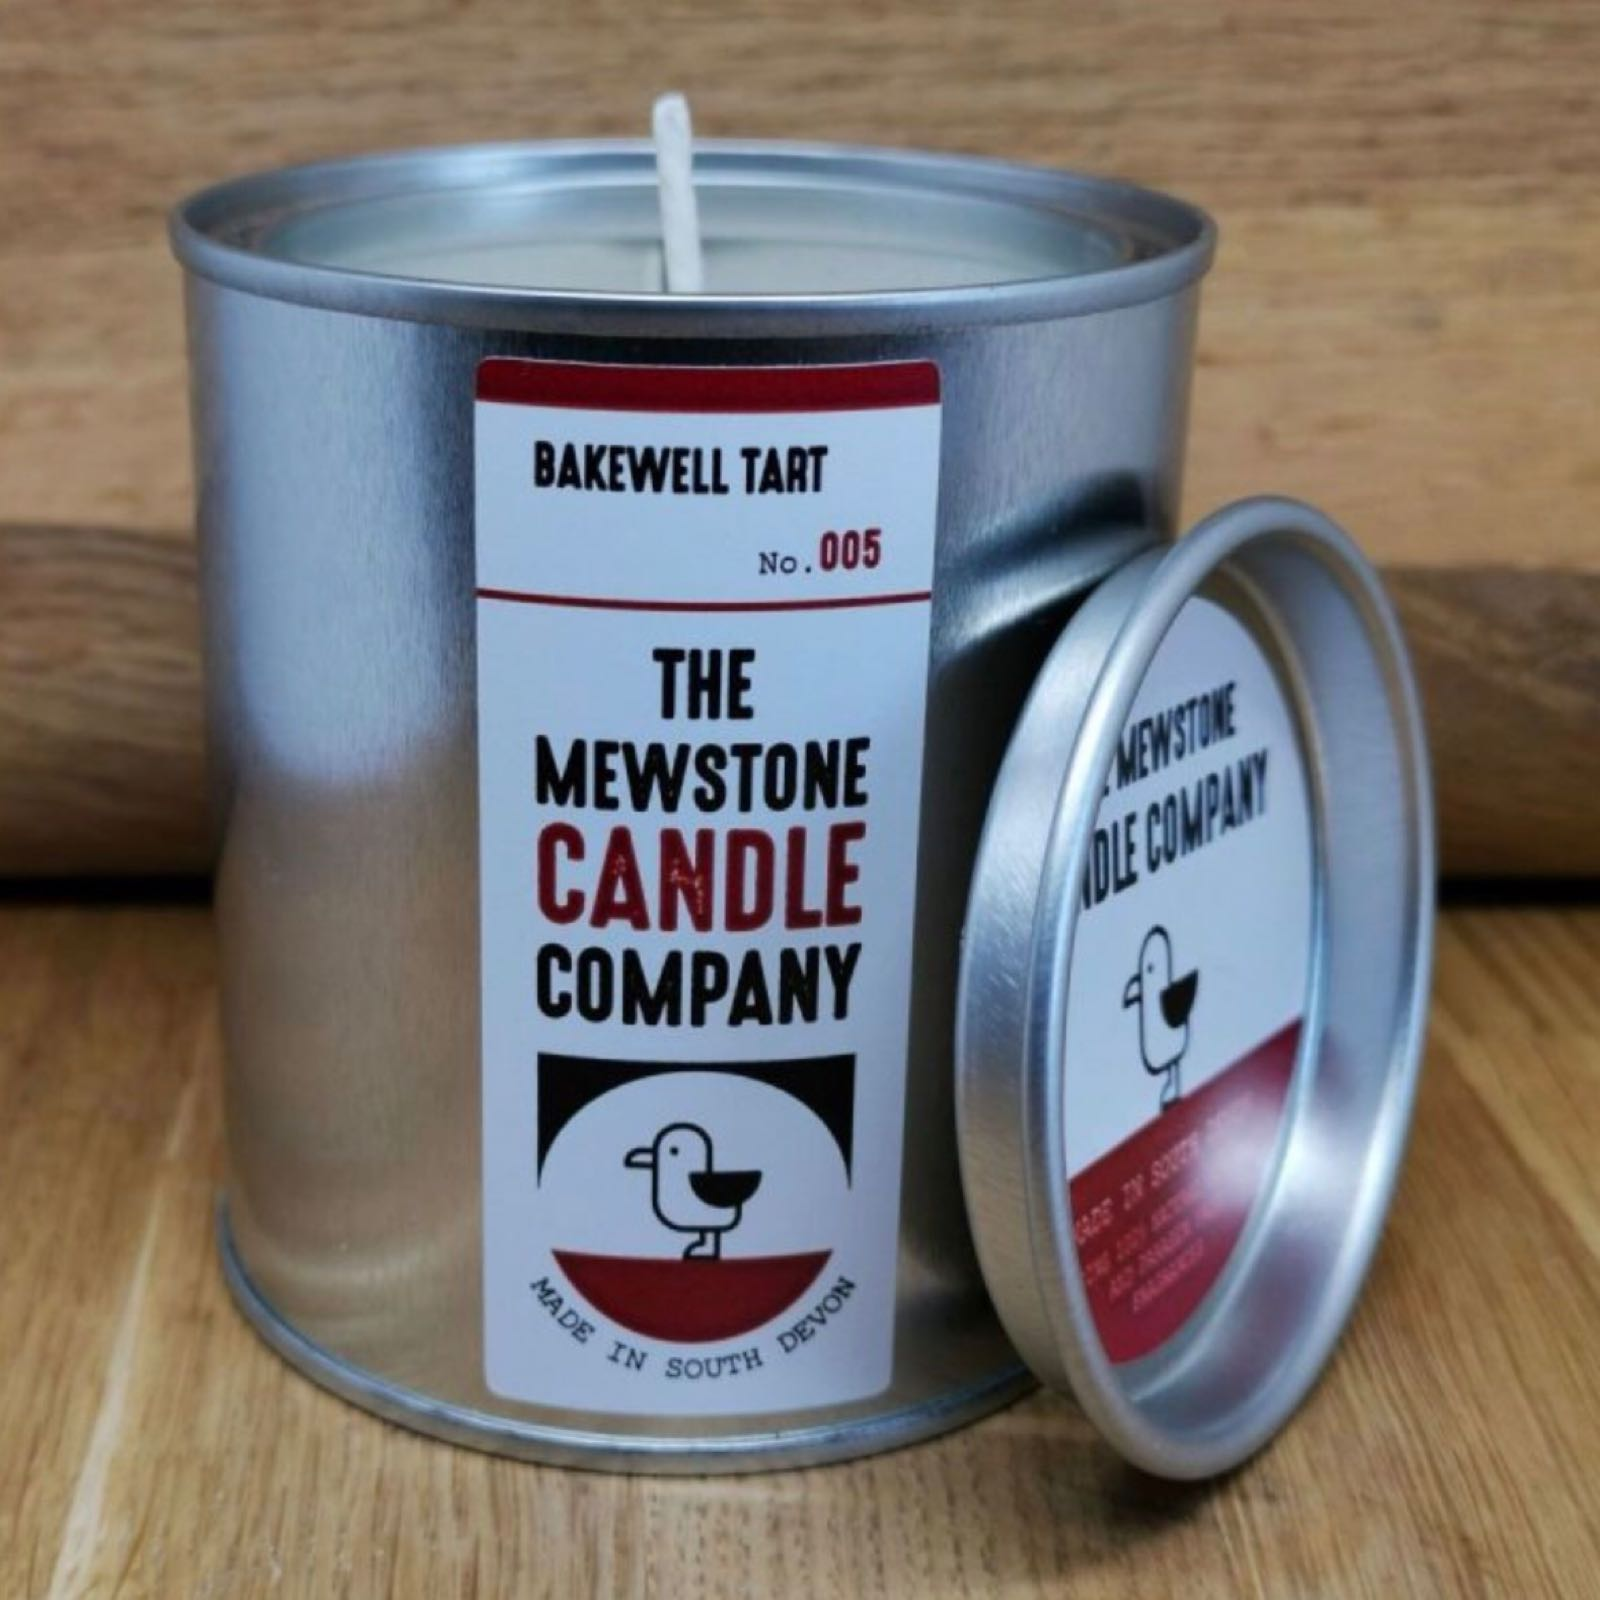 Bakewell Tart Paint Tin Candle